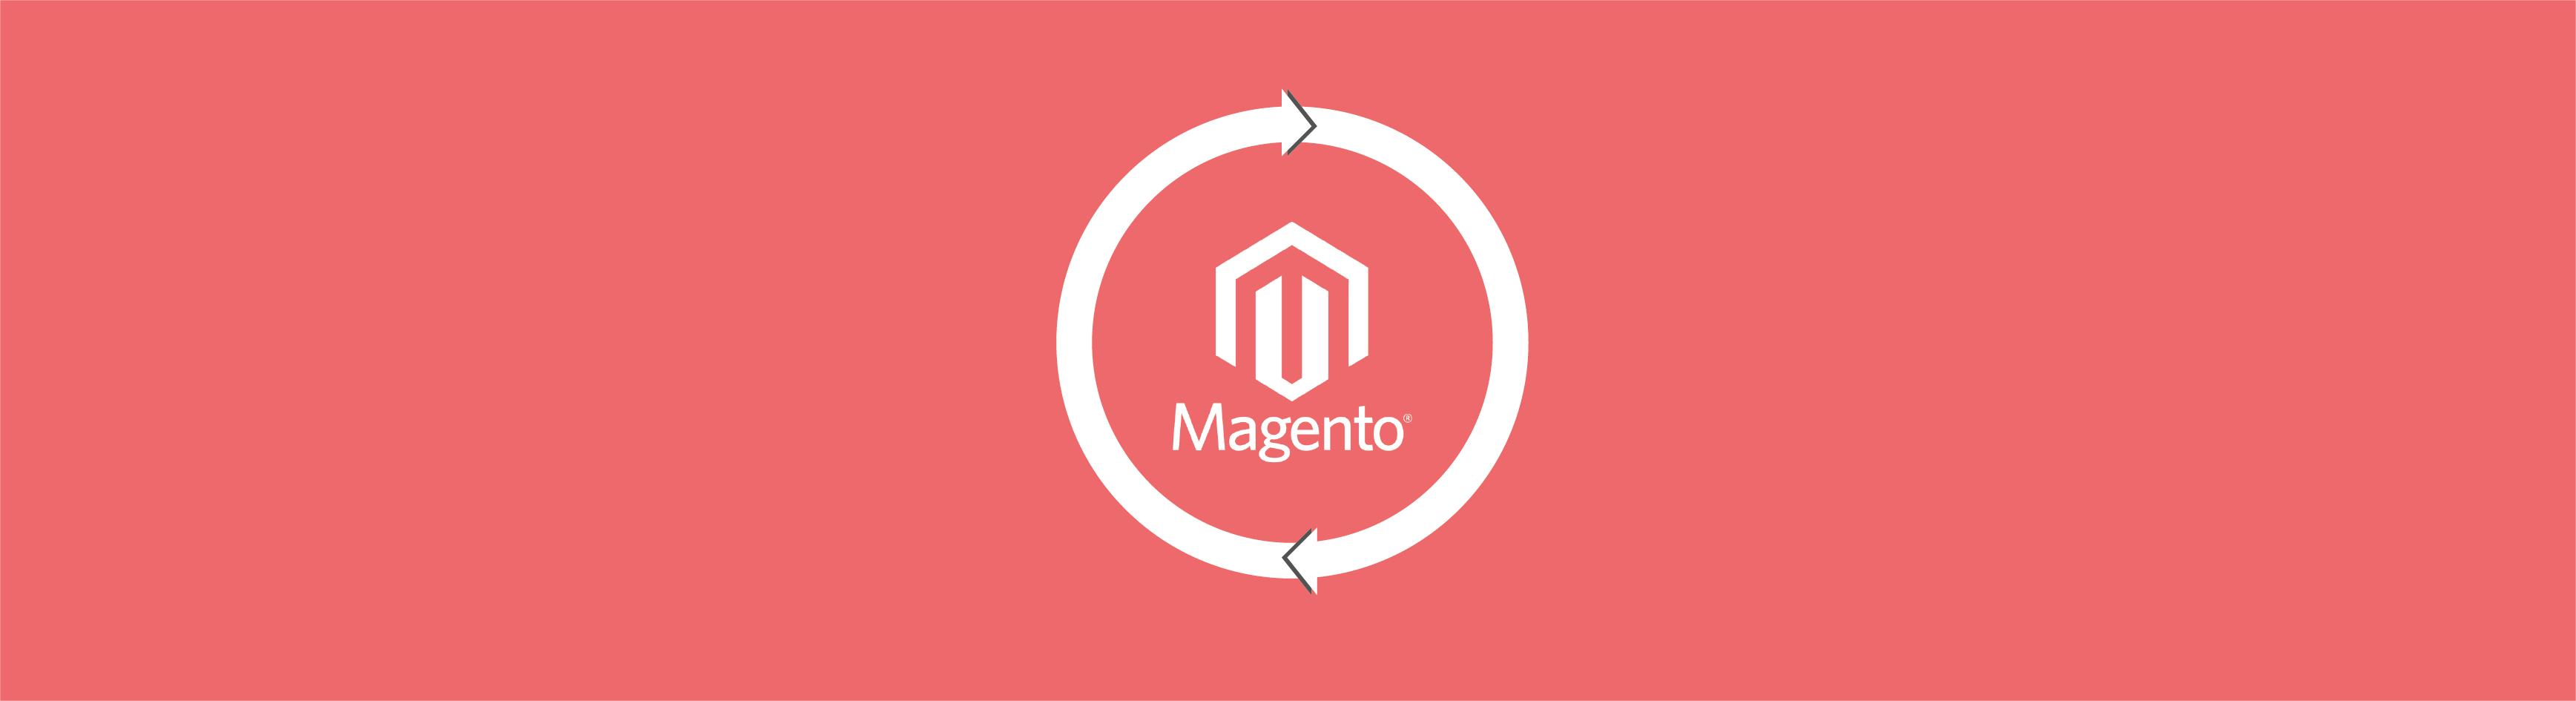 Aquive media Magento webshop update